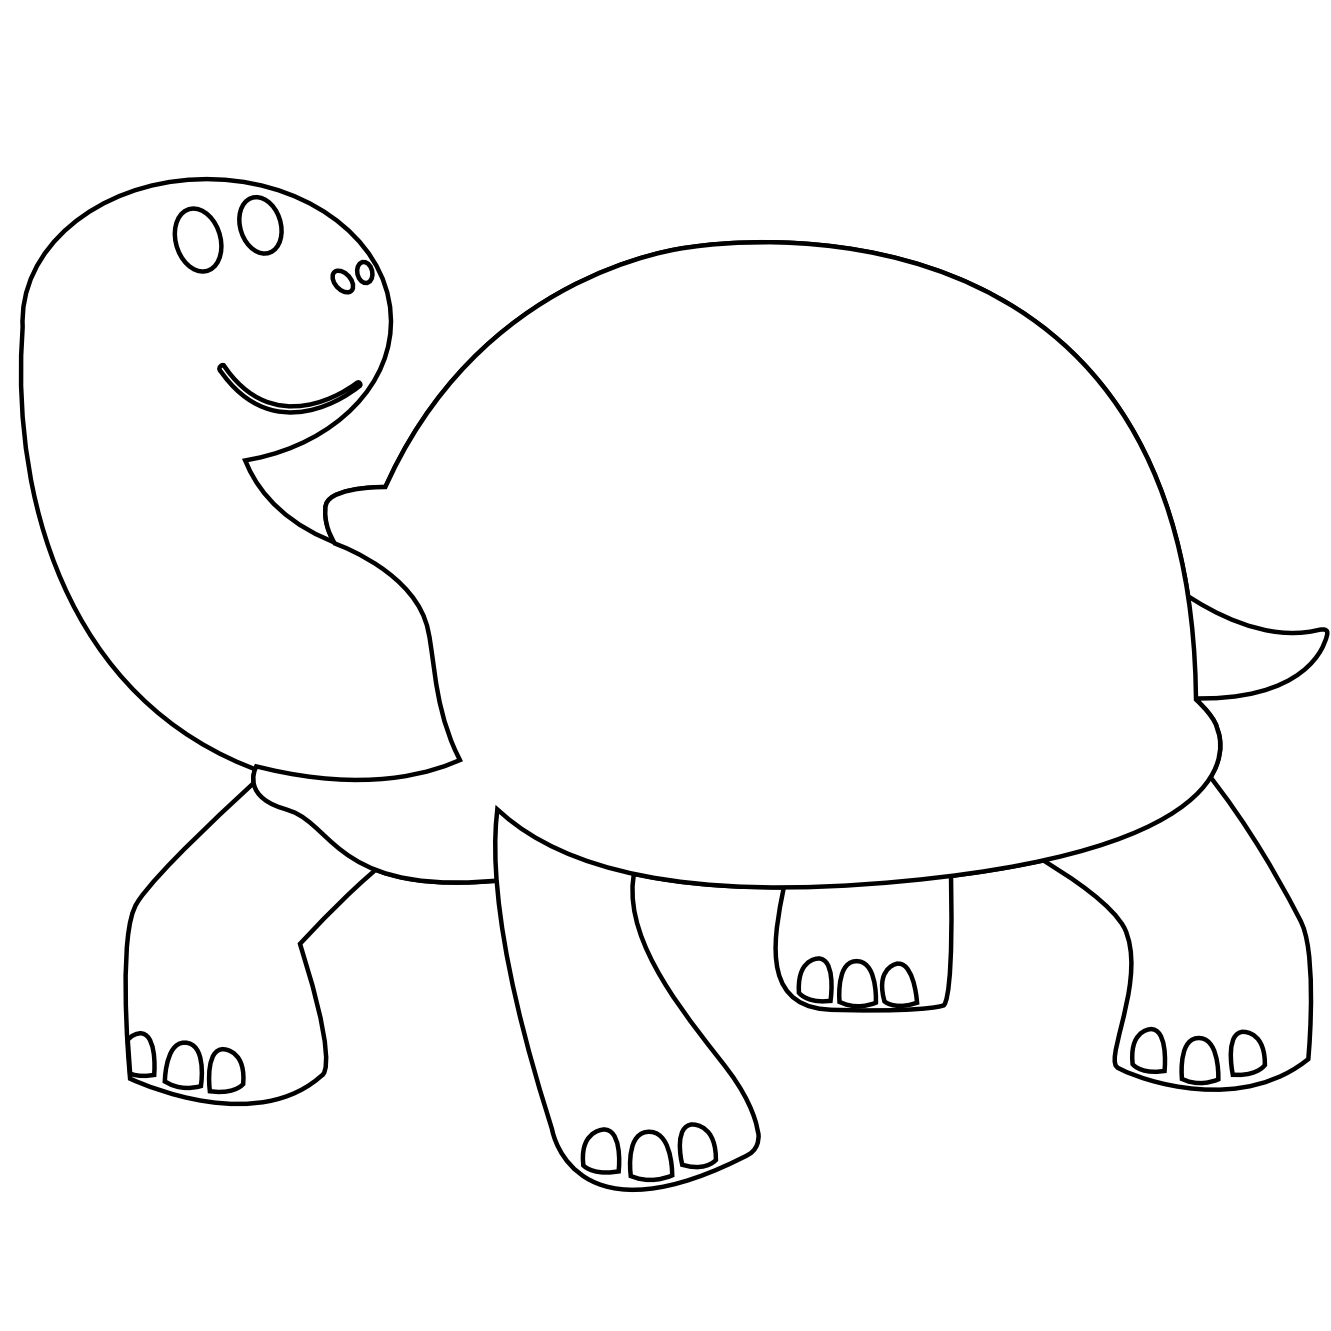 Line Art Drawings Of Animals : Line drawing of animals clipart best